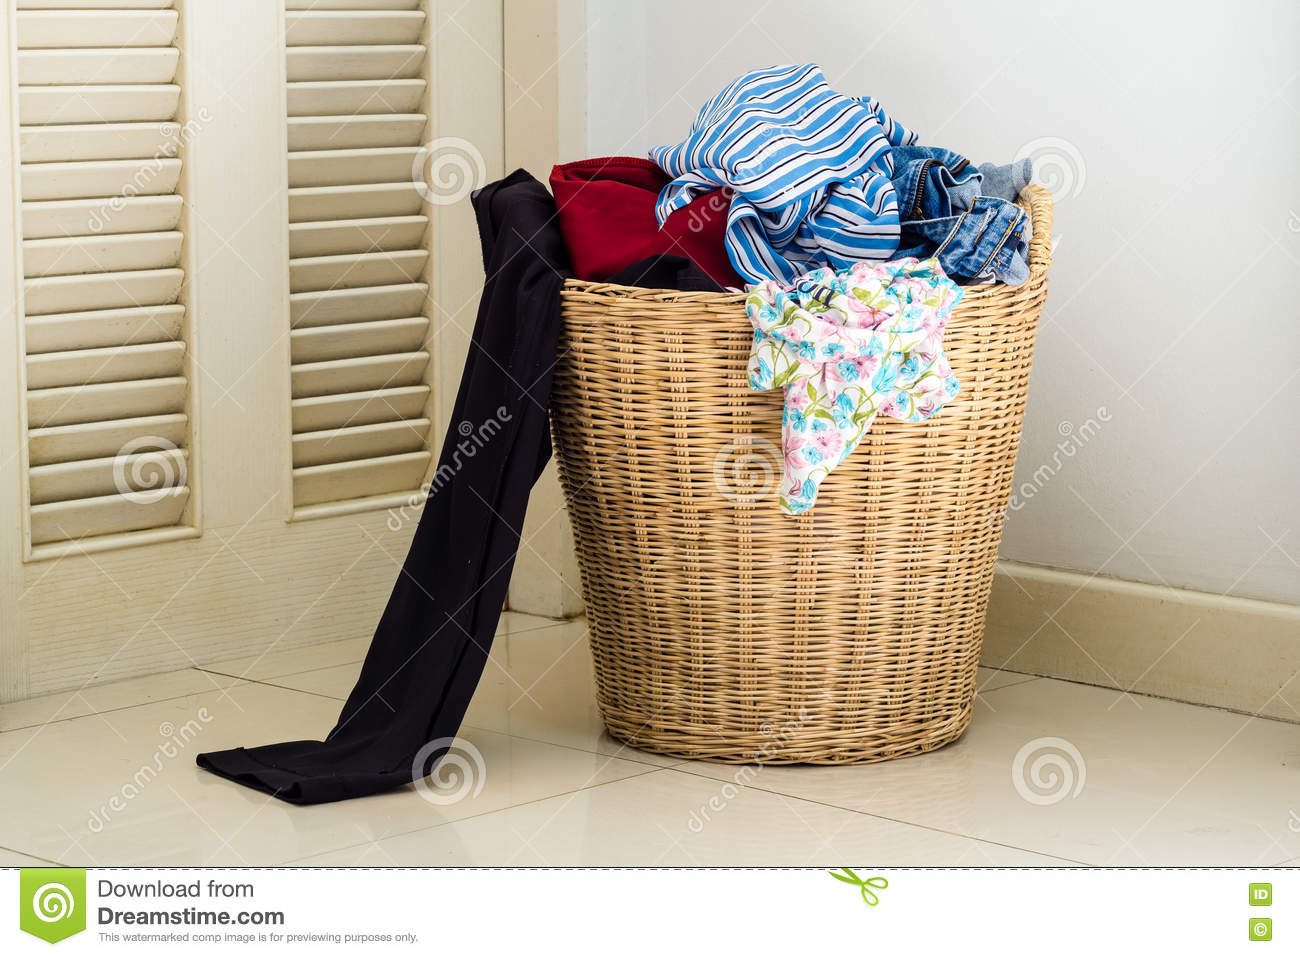 Dirty Laundry Baskets Pile Of Dirty Clothes In Washing Basket Stock Image Image Of